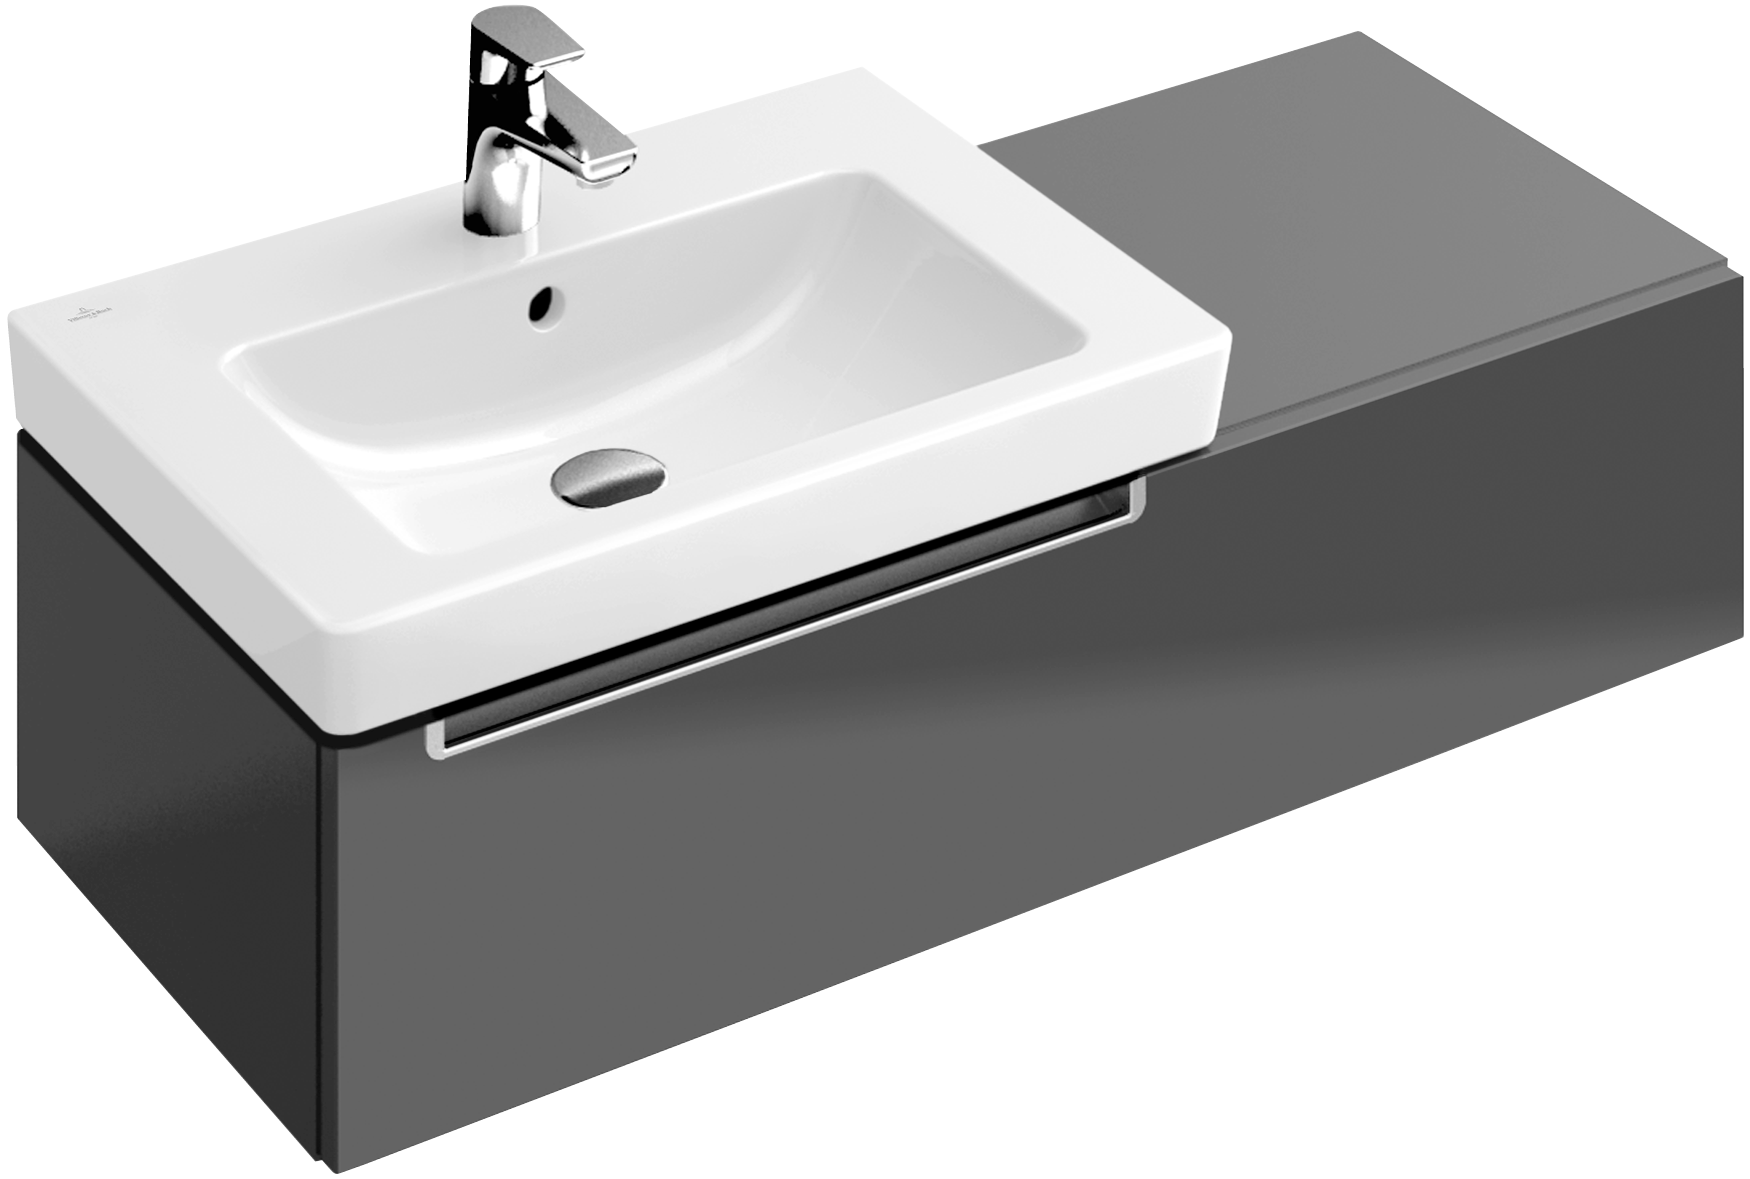 Villeroy And Boch Vanity subway 2.0 vanity unit a7000s - villeroy & boch